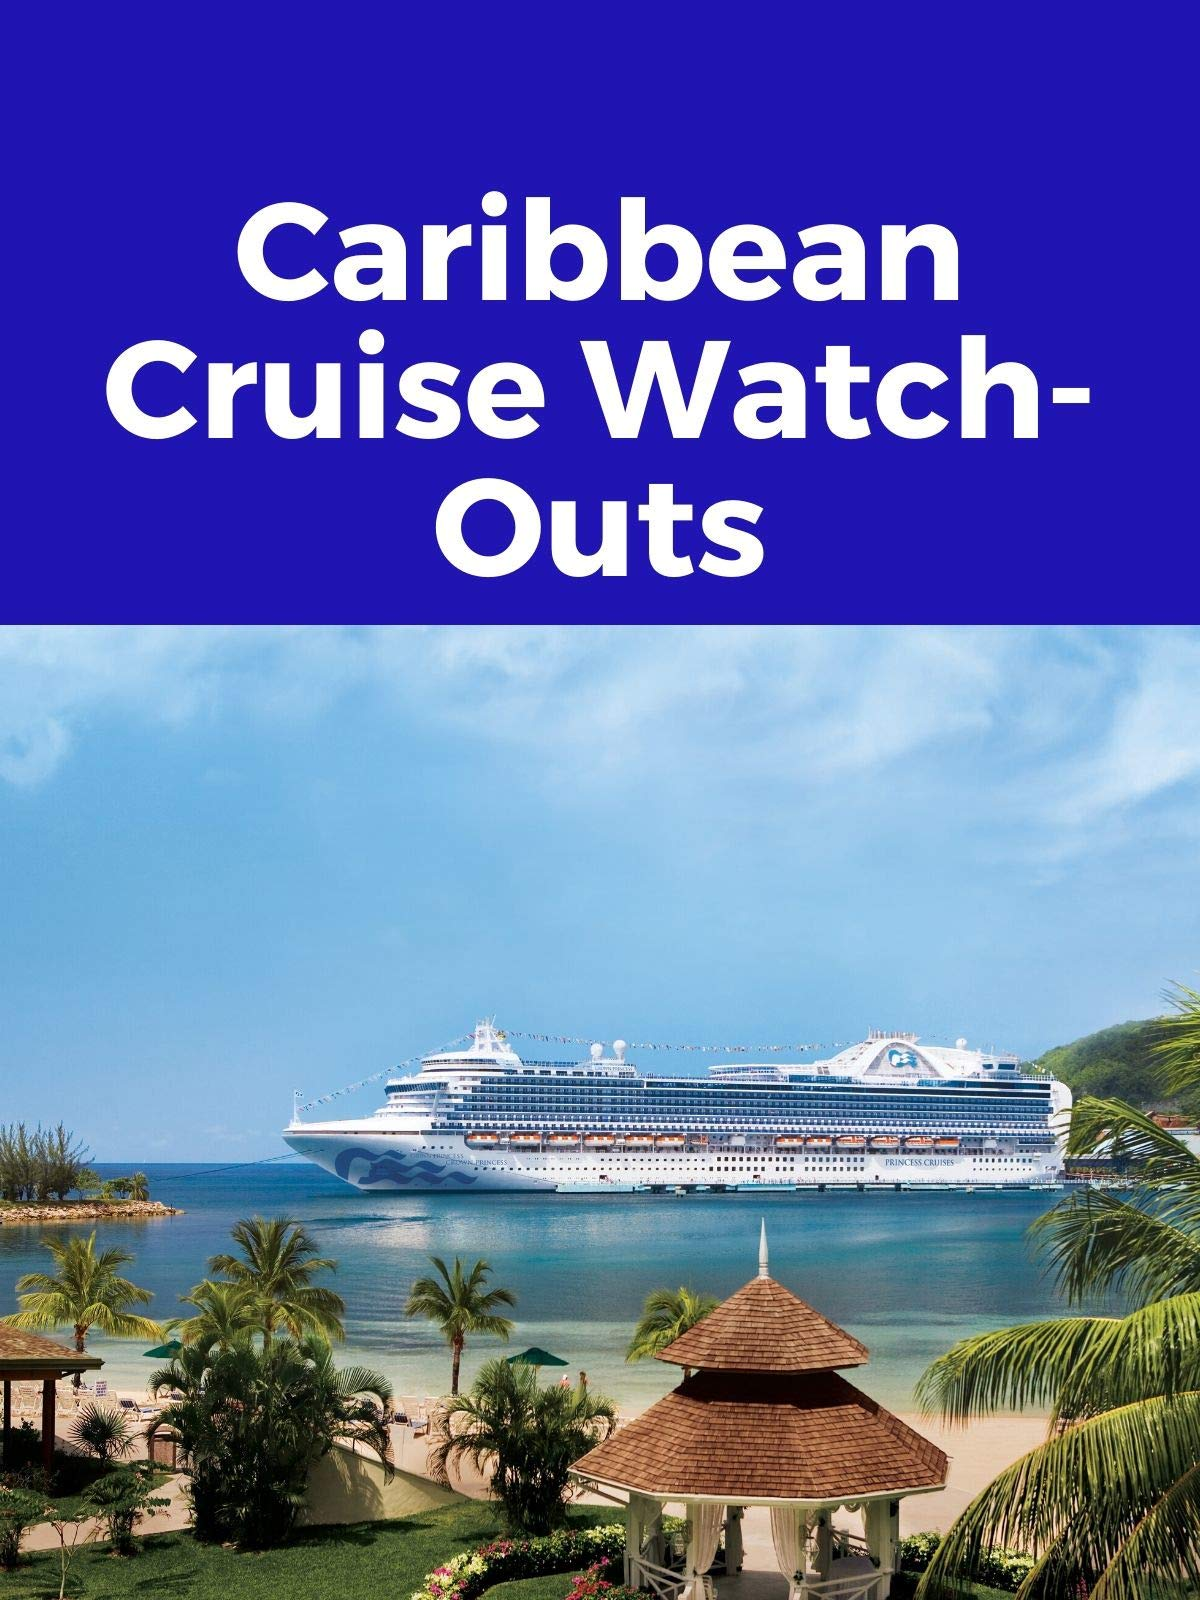 Clip: Caribbean Cruise Watch-Outs